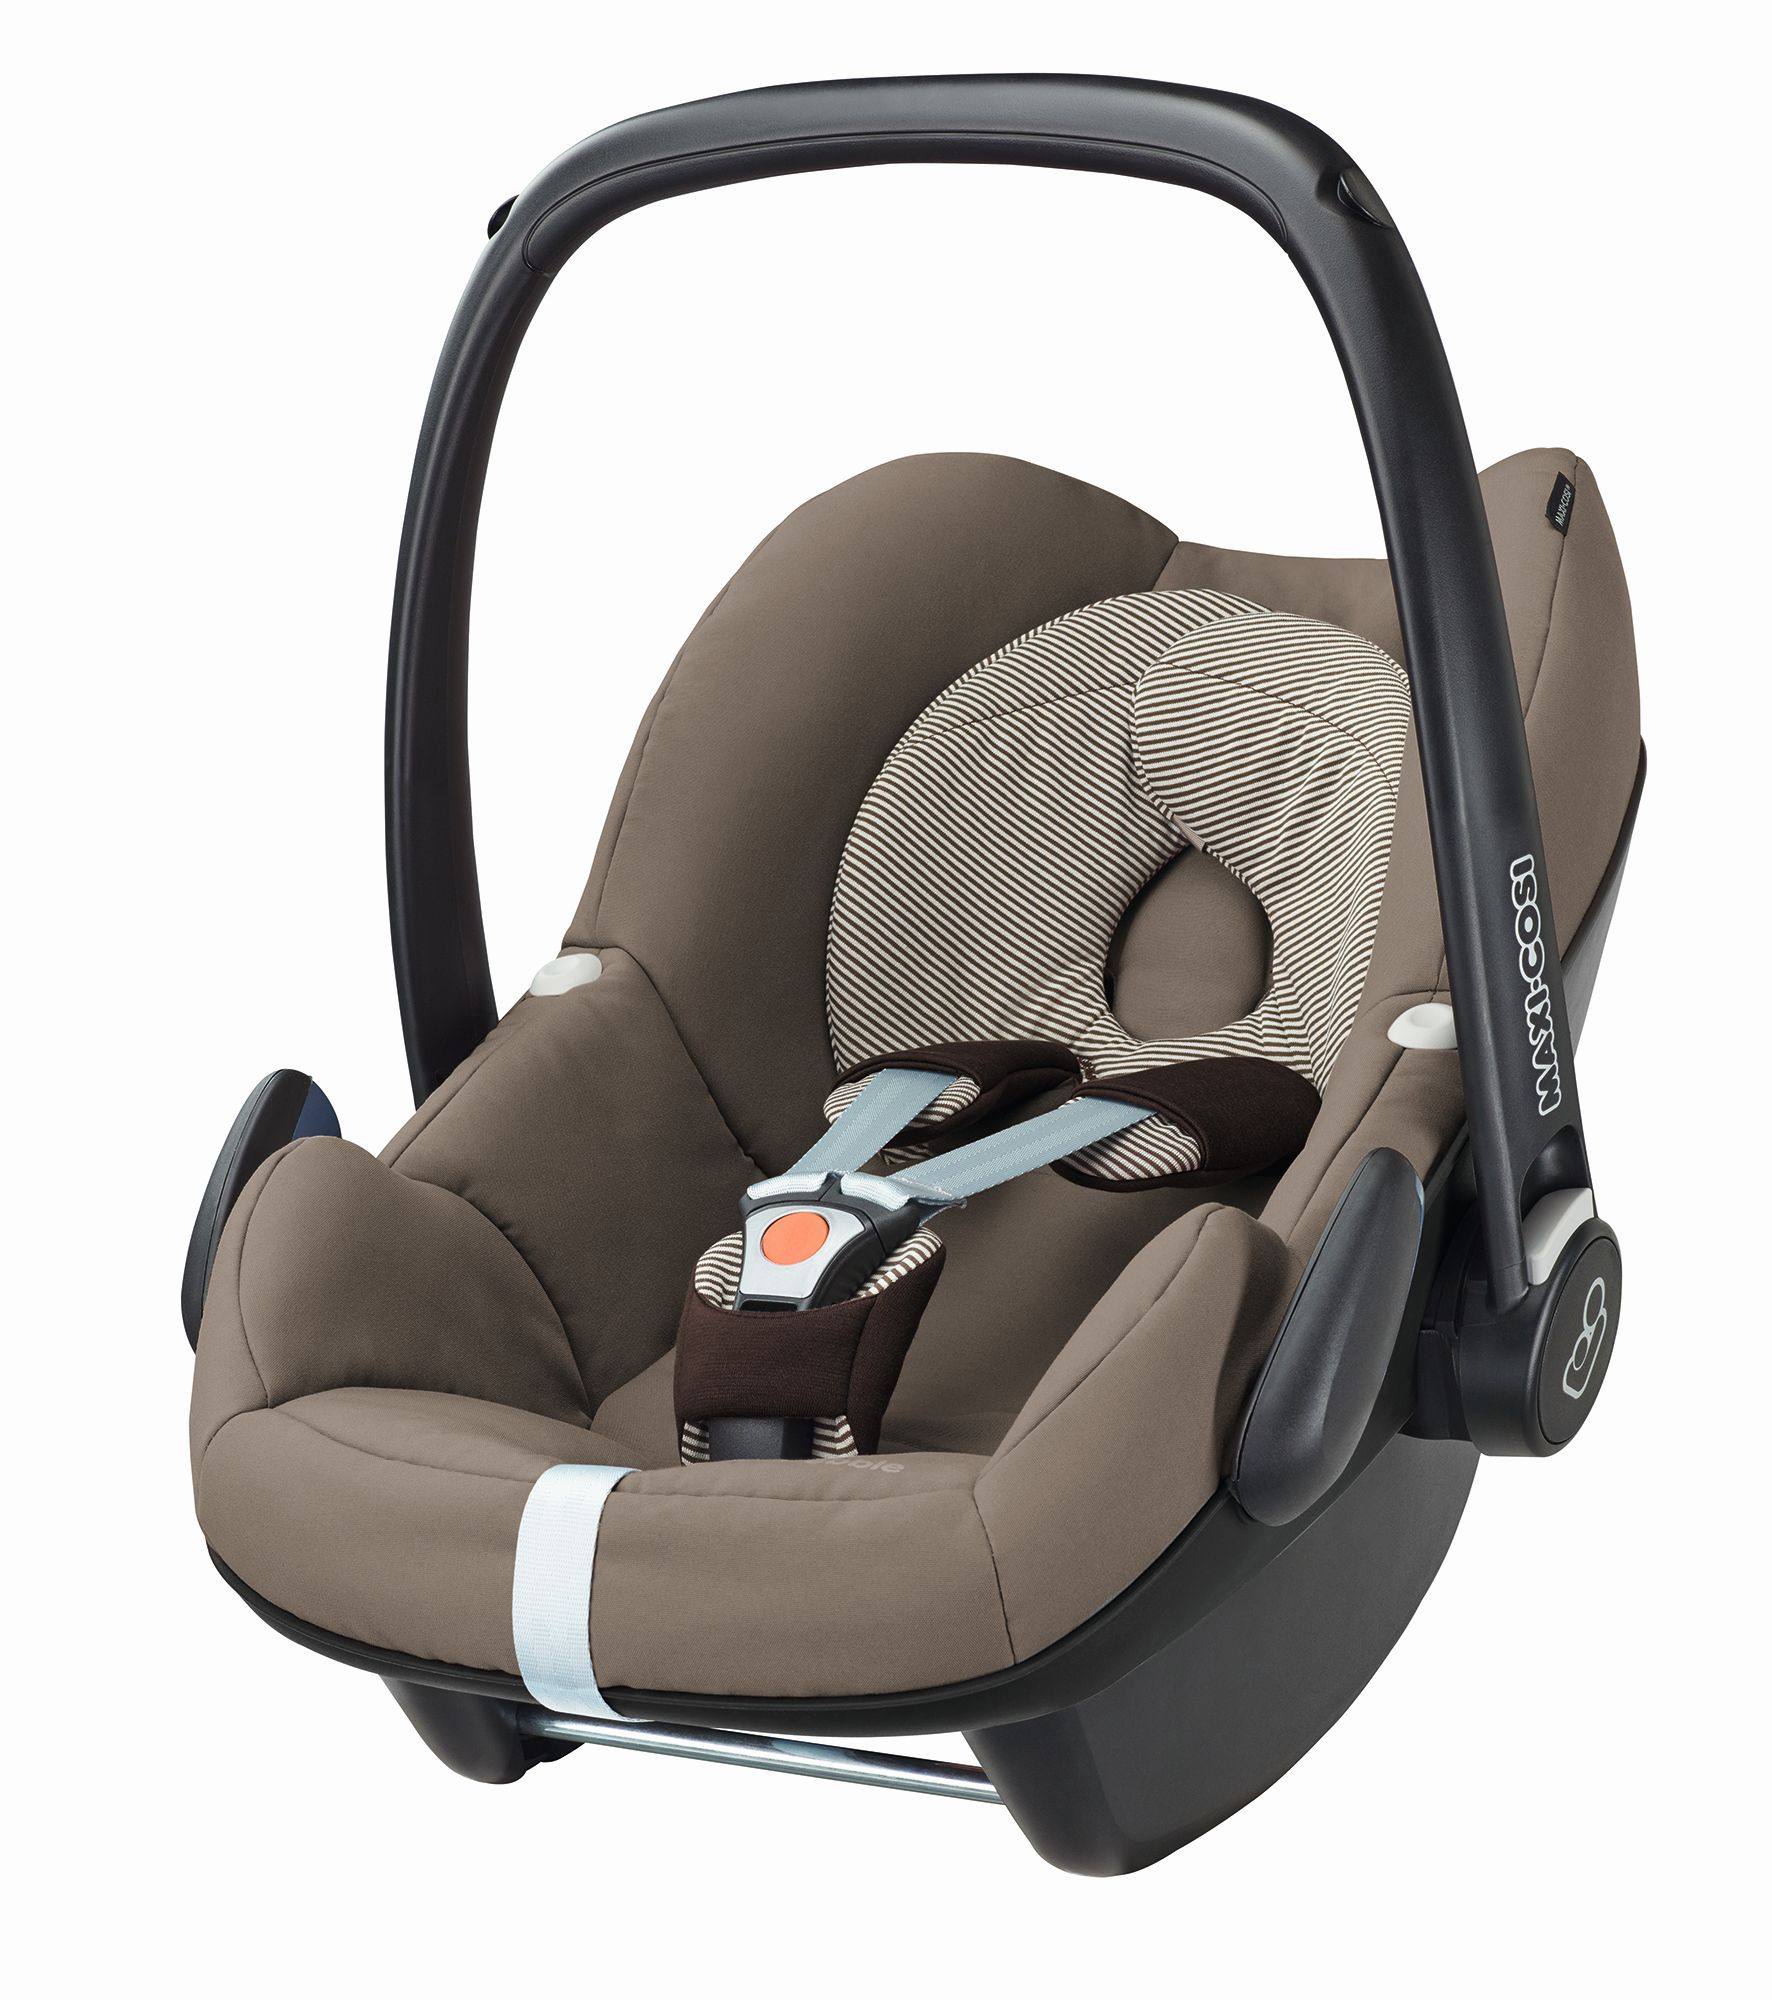 maxi cosi infant car seat pebble 2018 earth brown buy at kidsroom car seats. Black Bedroom Furniture Sets. Home Design Ideas